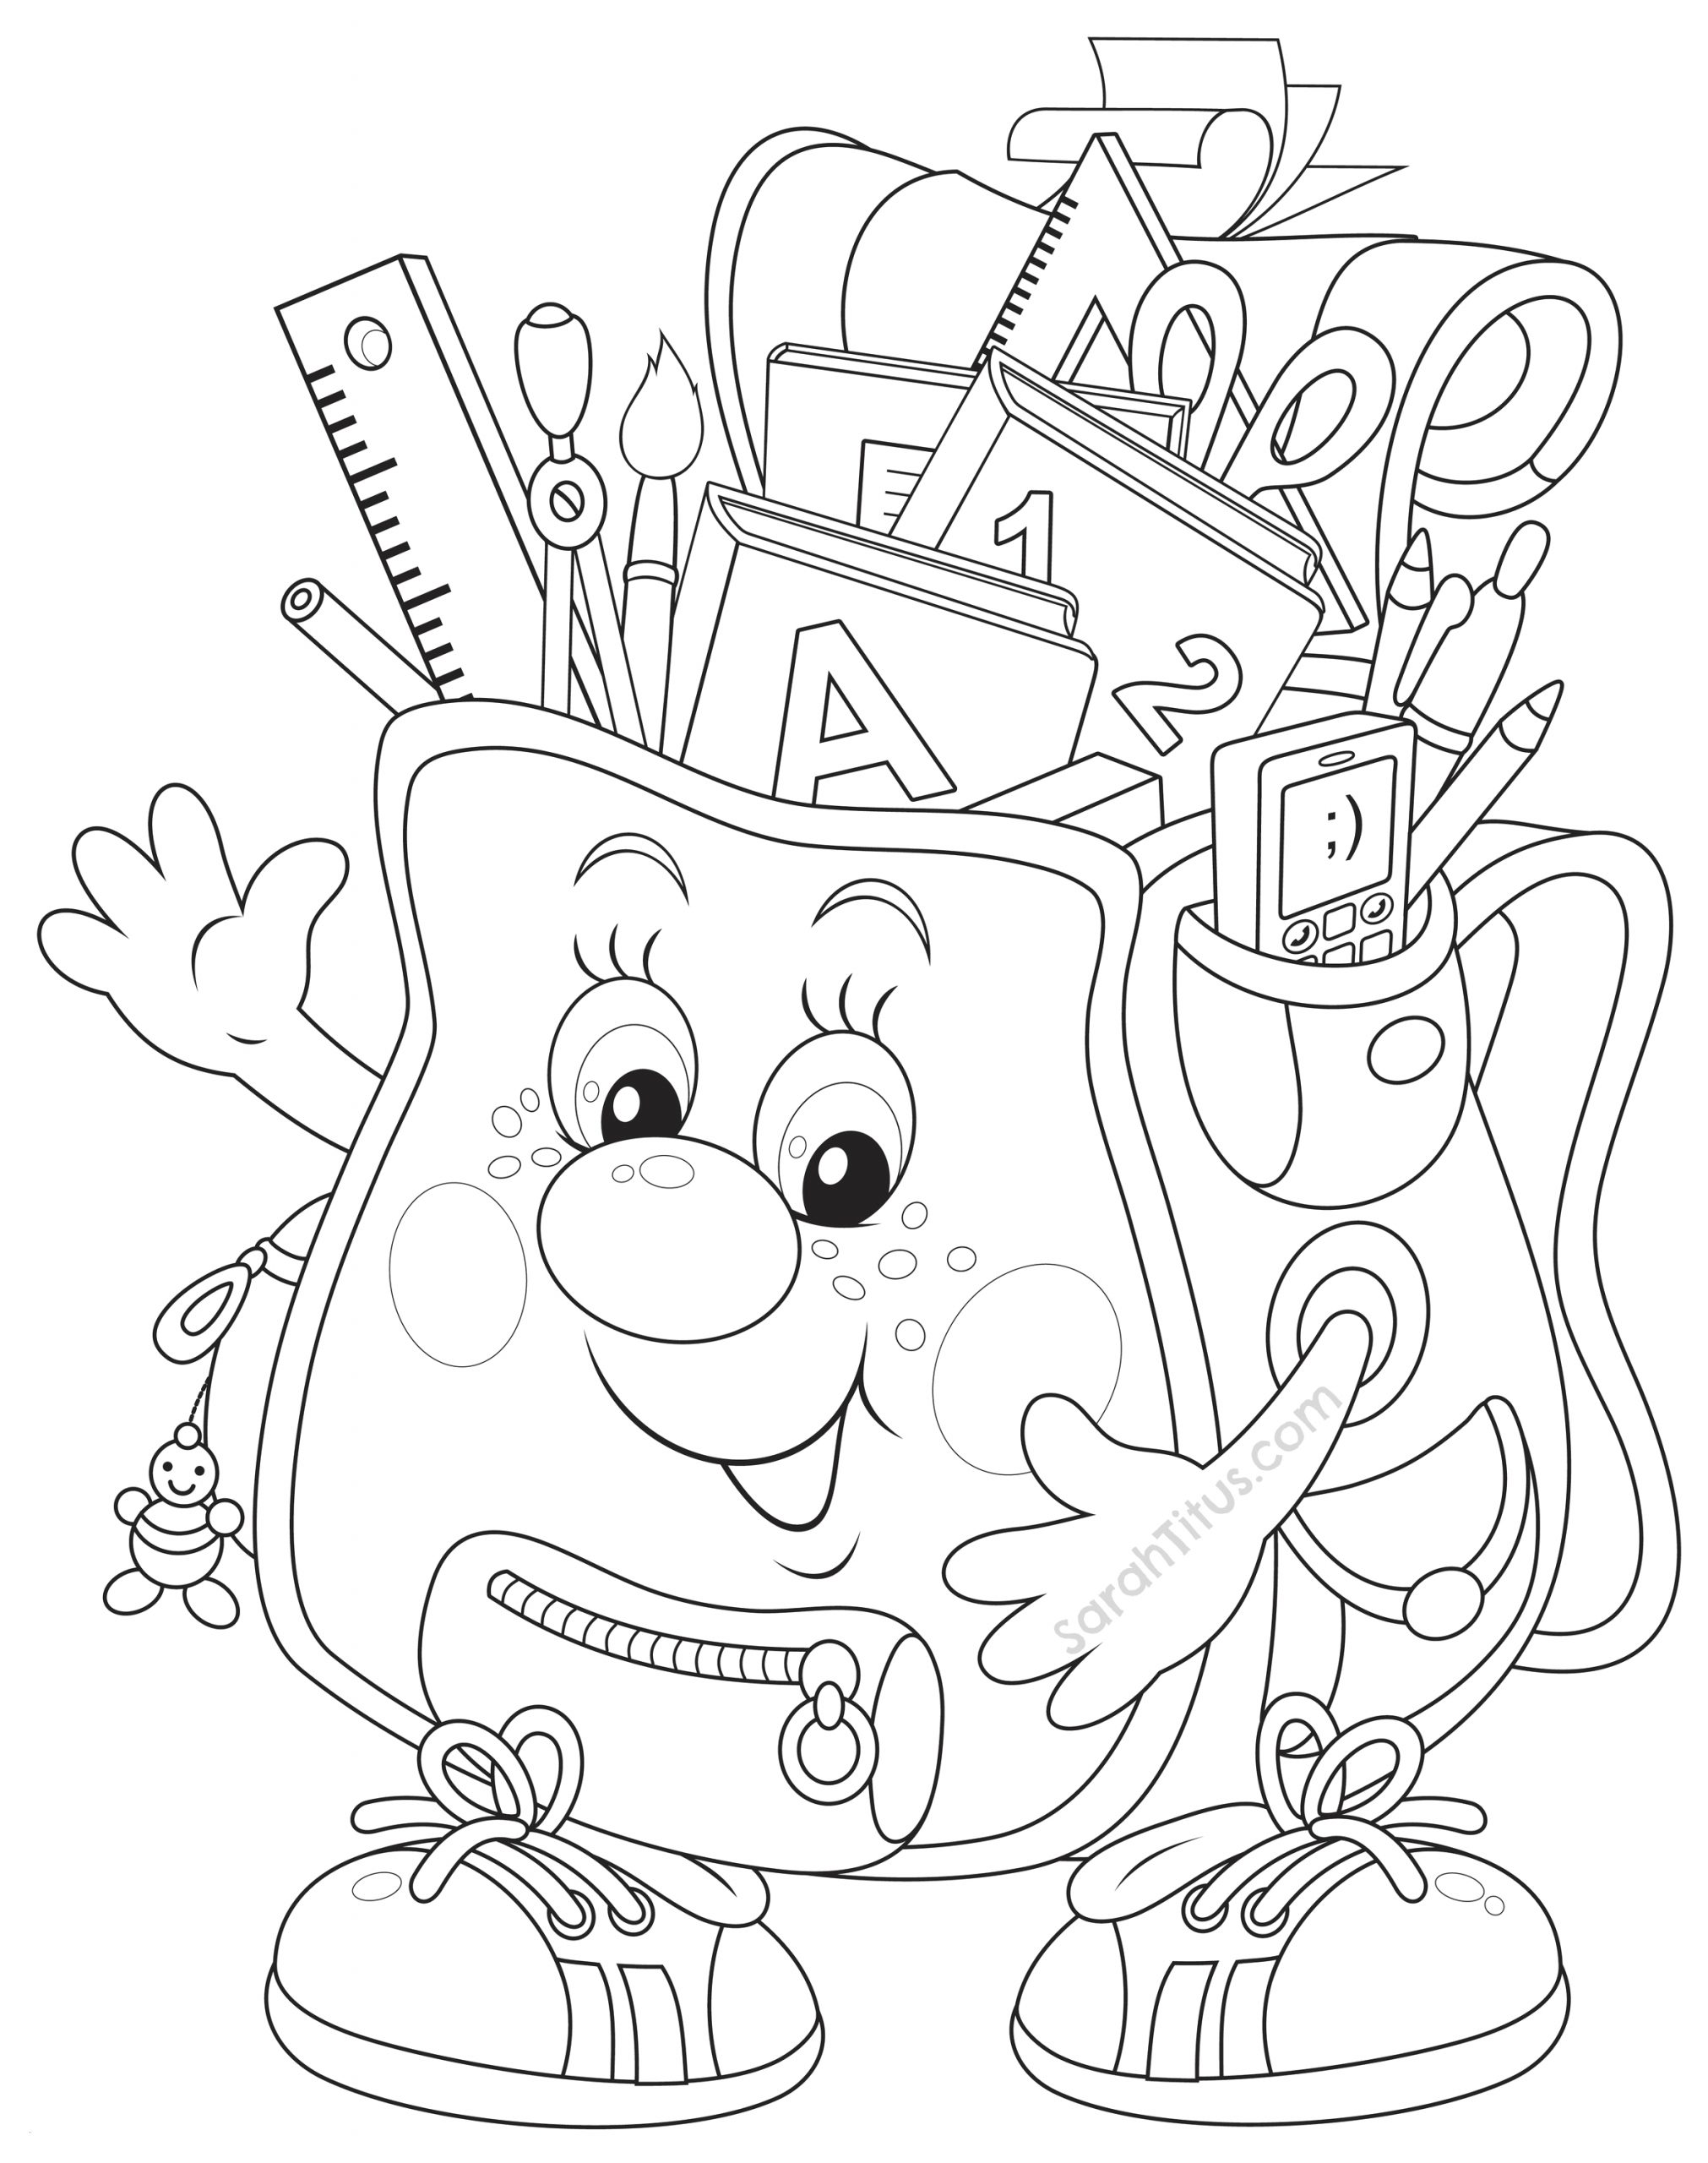 Pre K Back to School Coloring Pages Pre K Coloring Pages Kindergarten Back to School Coloring